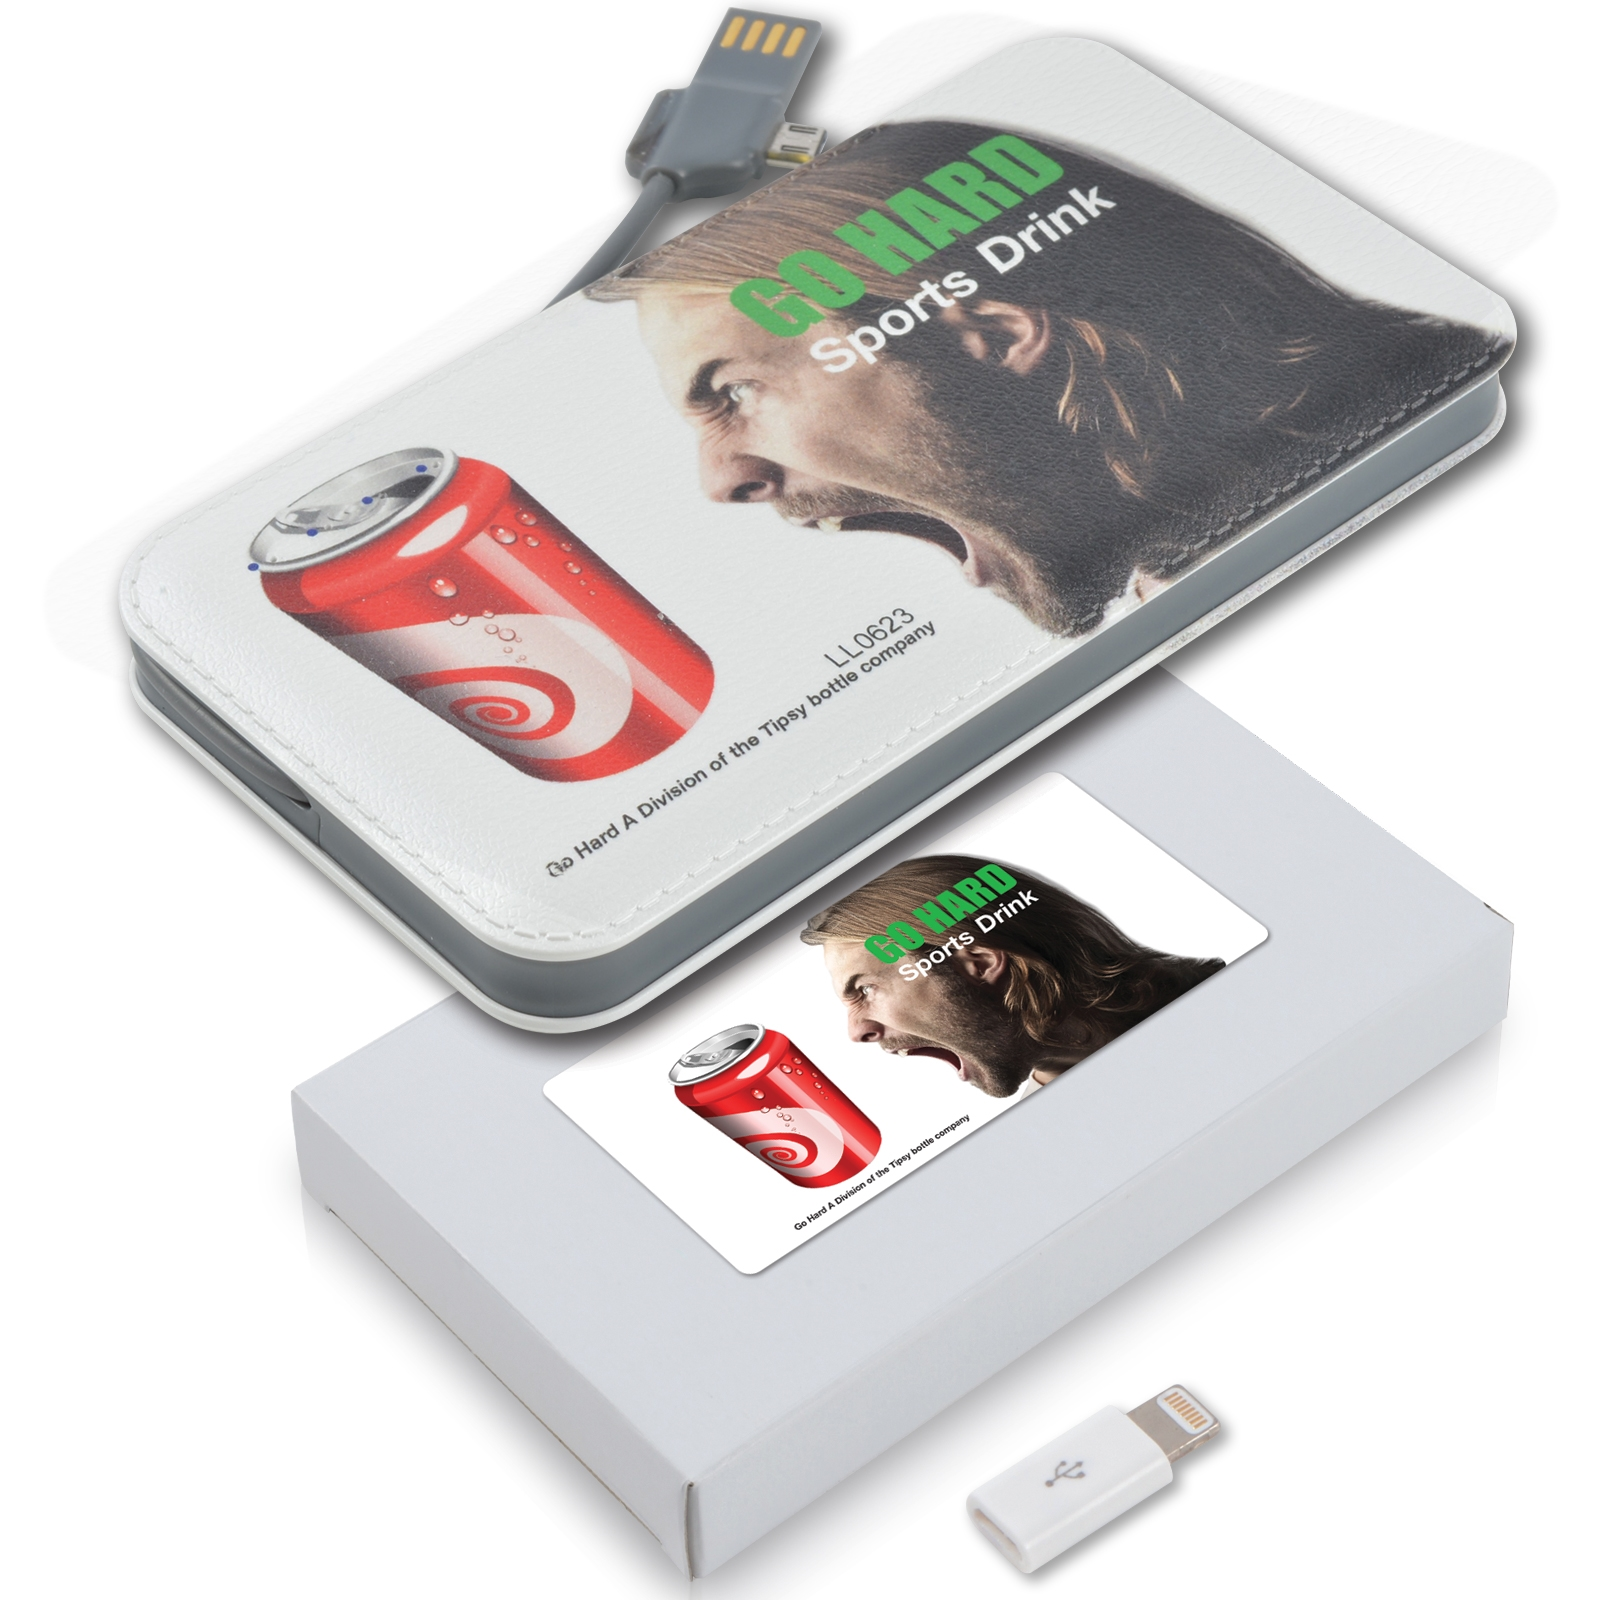 Extreme Power Bank - Includes a 1 colour printed logo, From $29.7